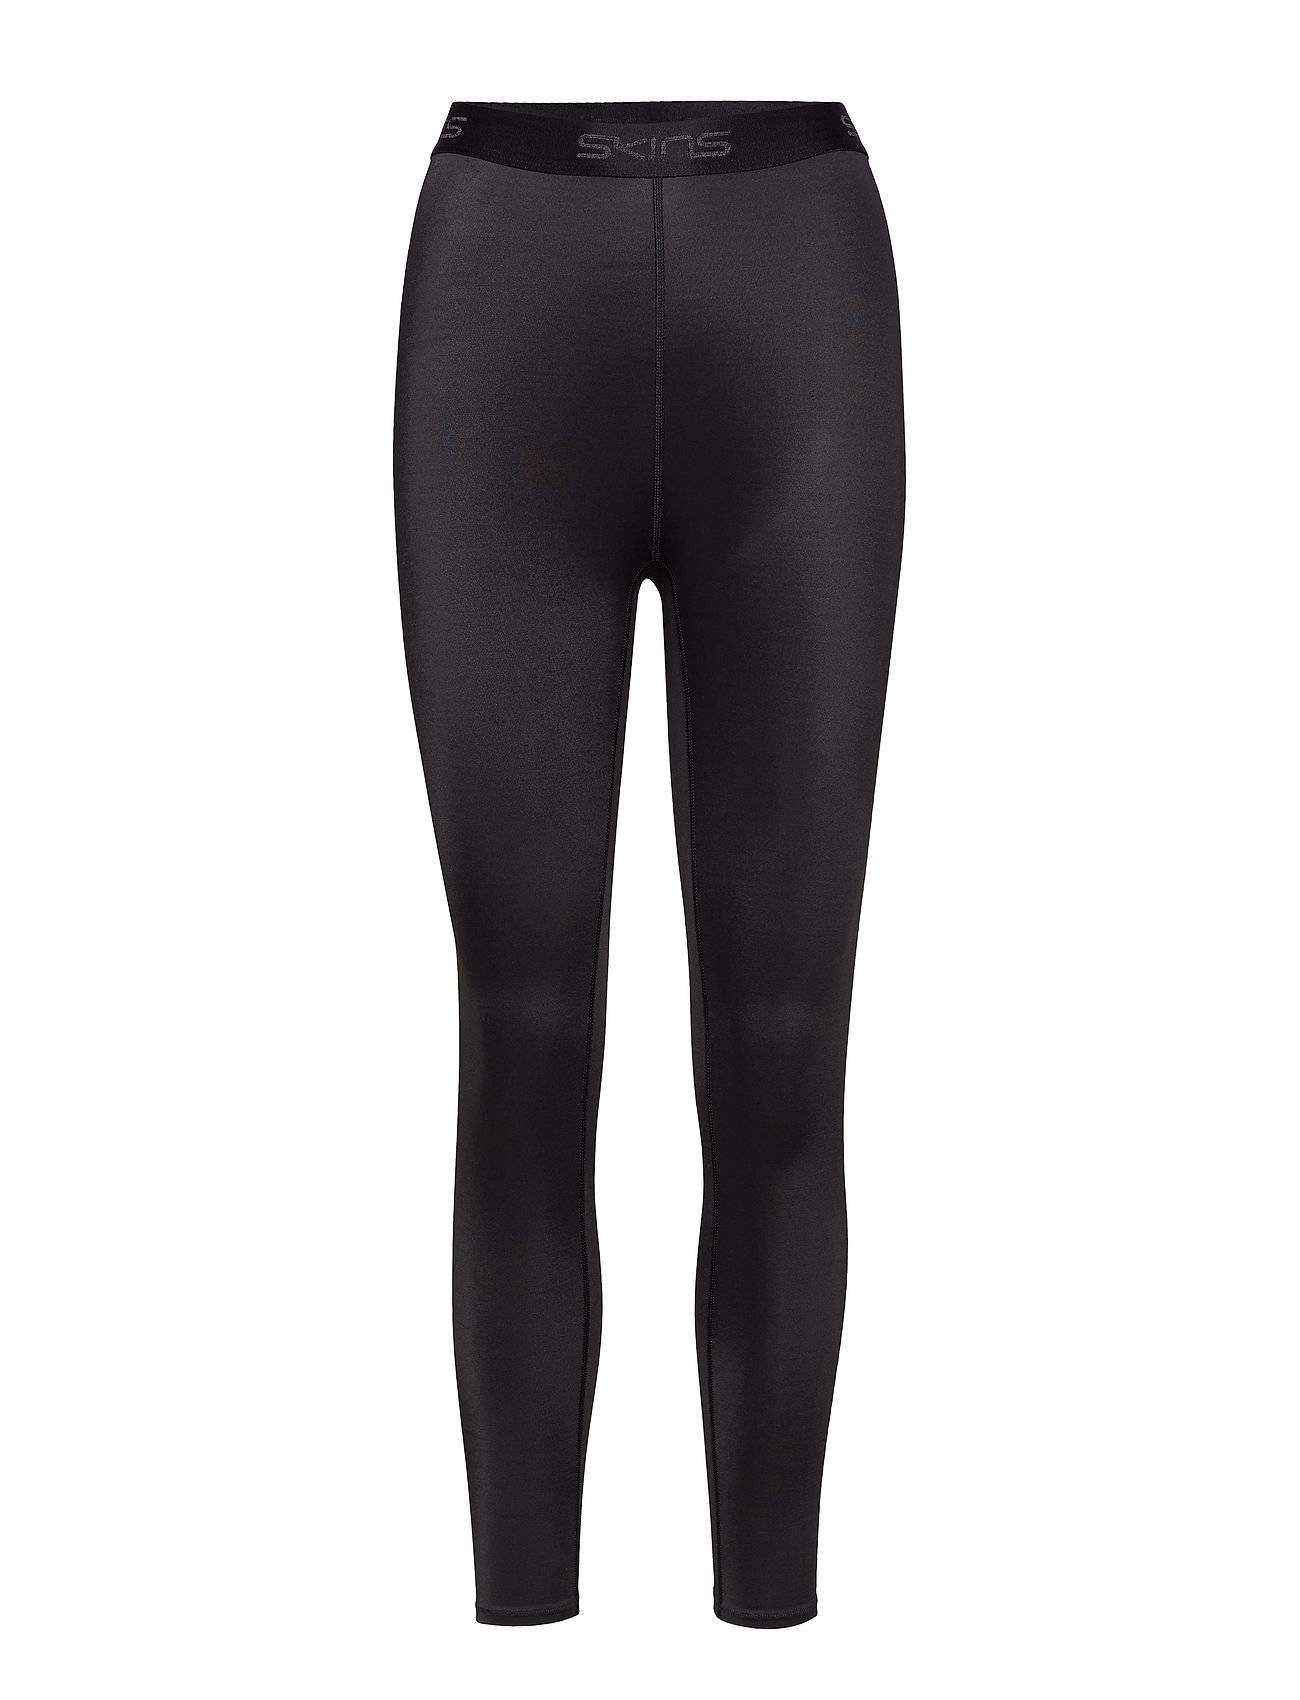 Skins Dnamic Womens 7/8 Tights Running/training Tights Musta Skins